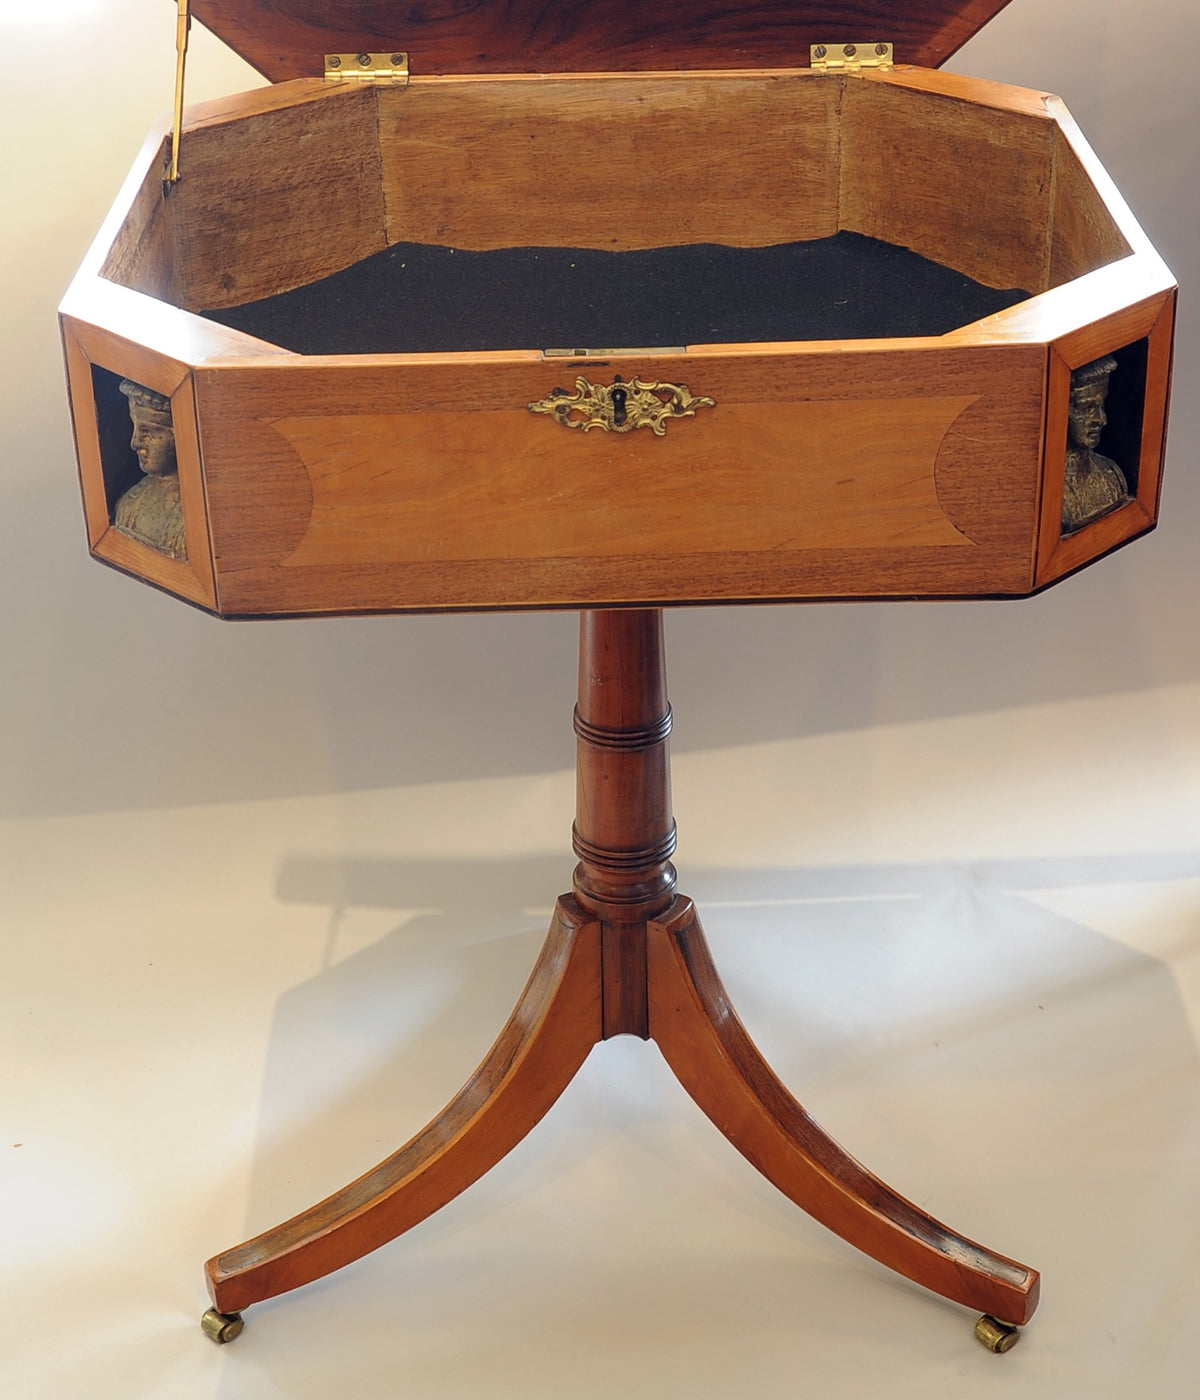 Hinged Top Game Table. English, Late 19th/Early 20th Century